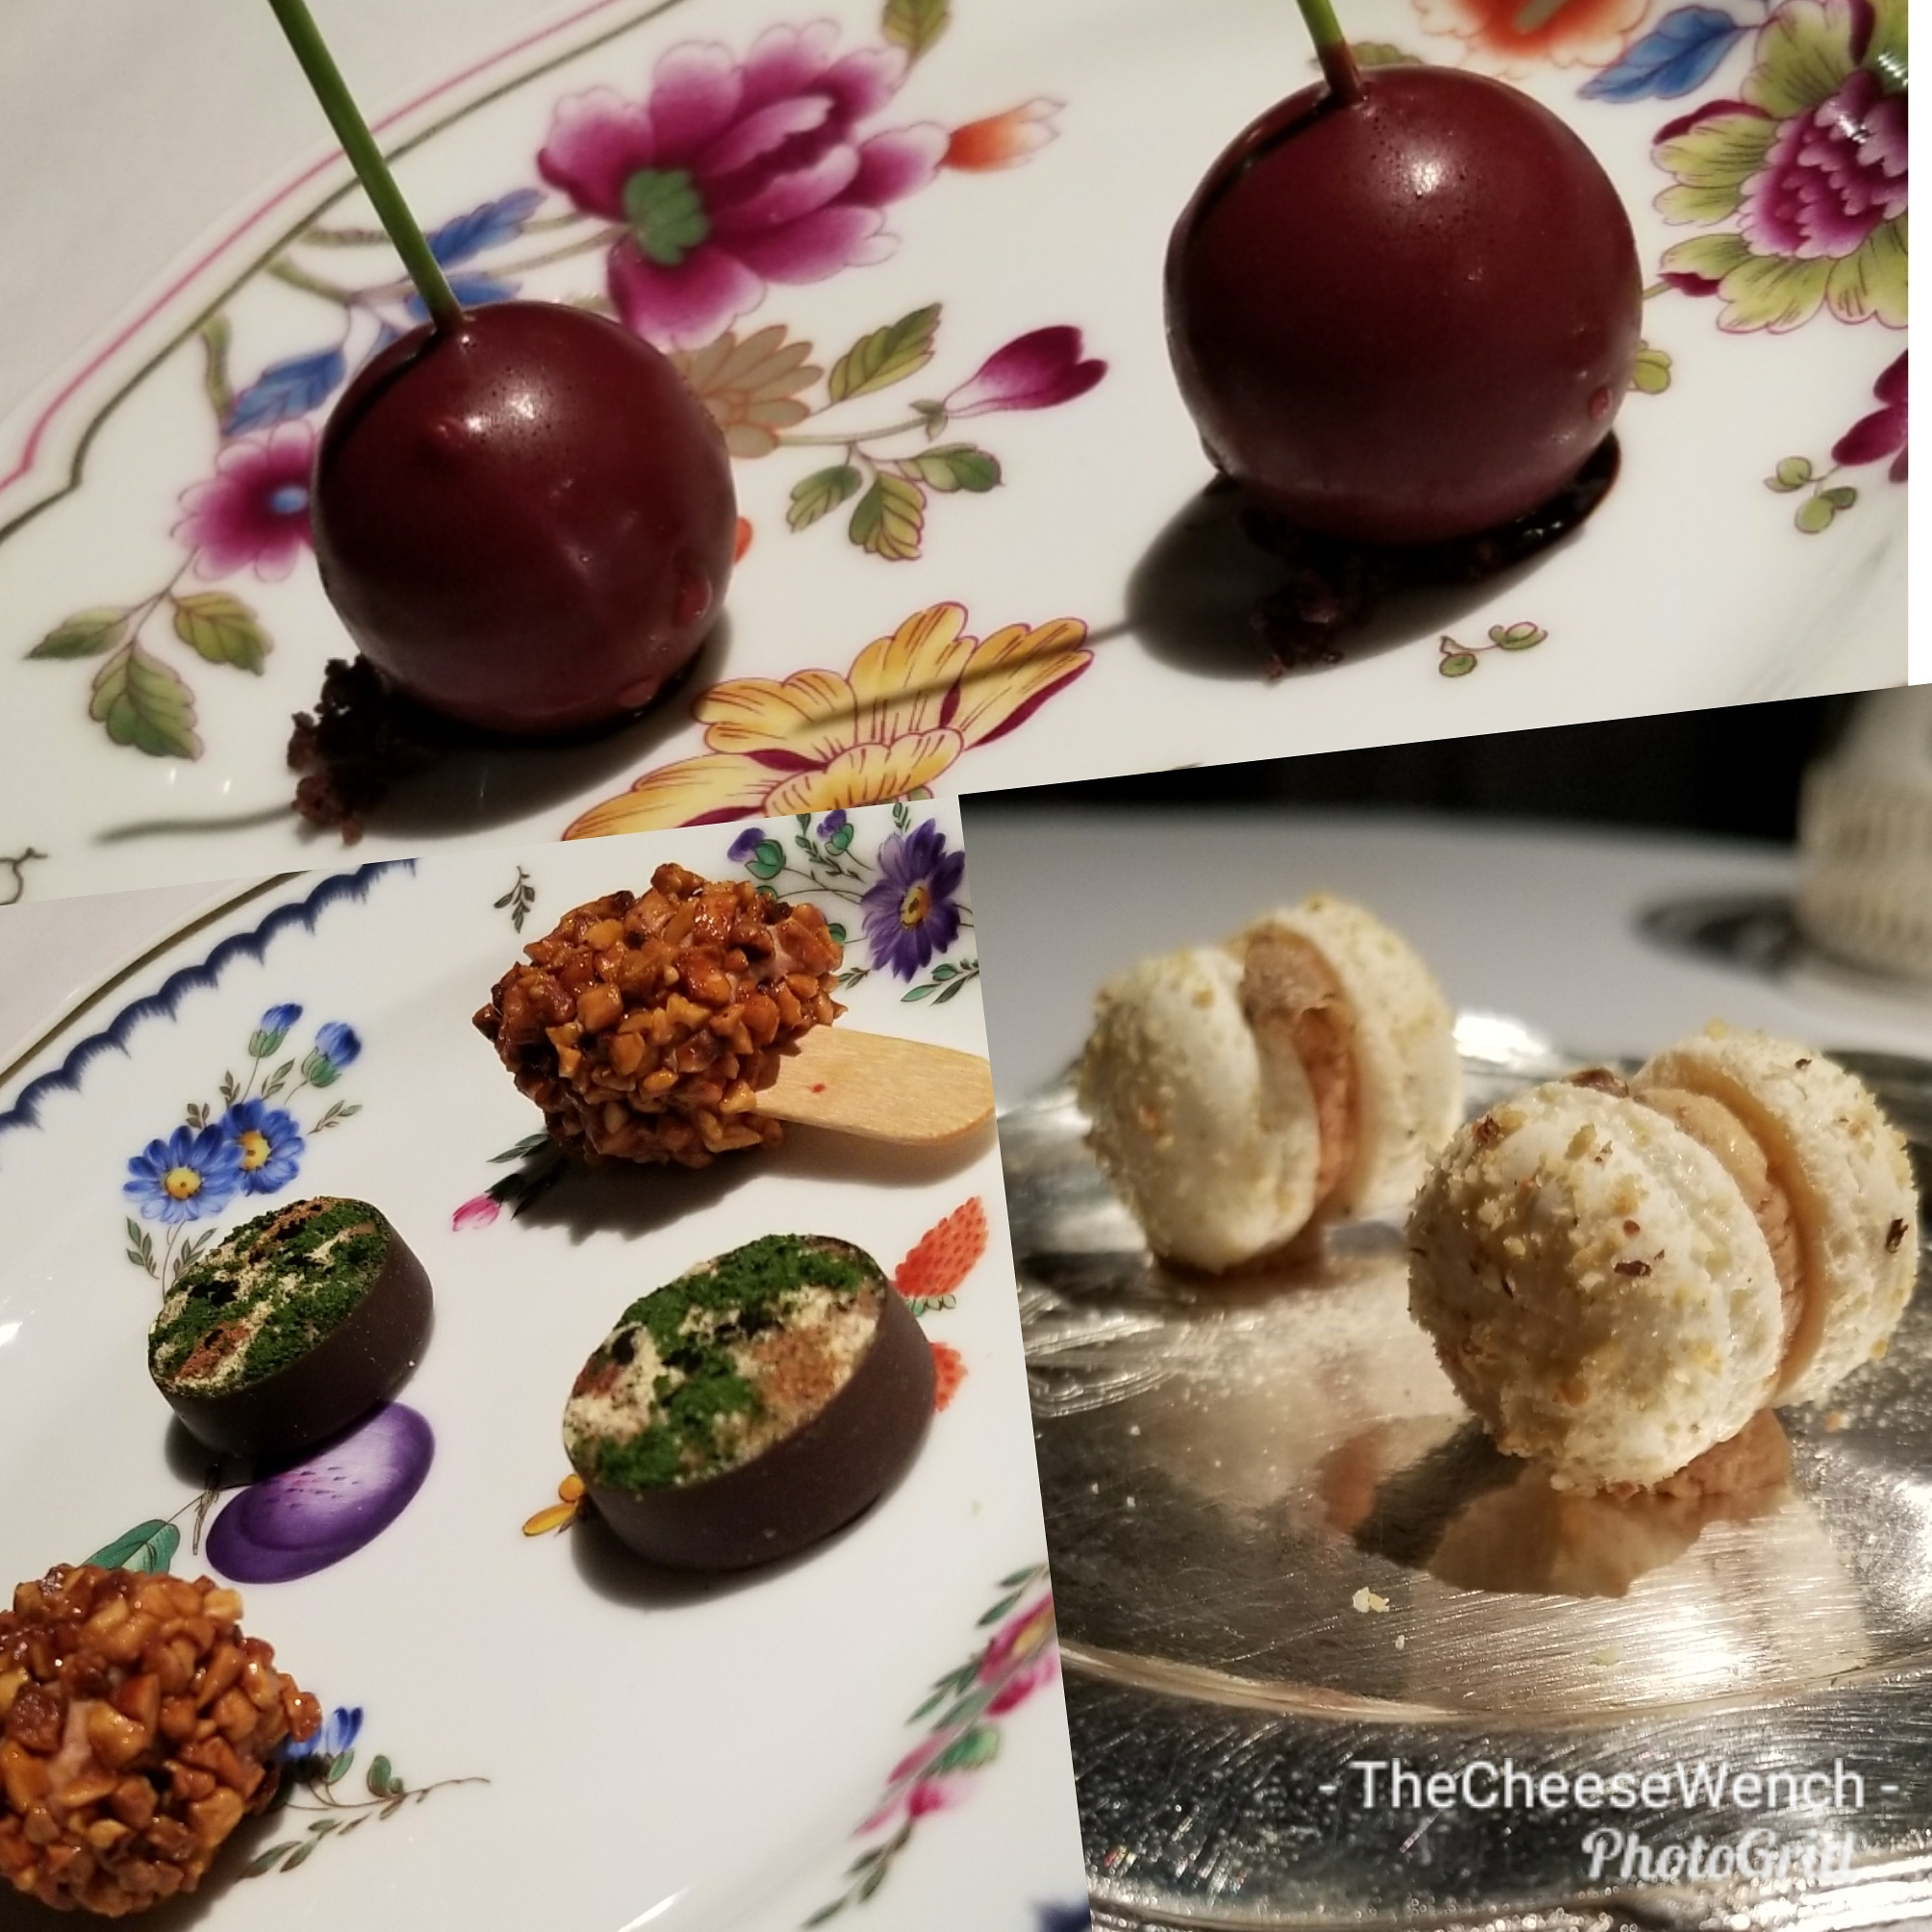 "A tribute to nearby Vignola, the ""cherry capital of Italy.  Foie gras on a stick with a heart of aged balsamic vinegar, and coated with Sicilian almonds and hazelnuts from Piedmont.  A beautiful and surprising bite that combines savory and sweet, as hare with powdered vegetables and herbs meets chocolate and foie gras.  Macarons of foie gras and truffles."